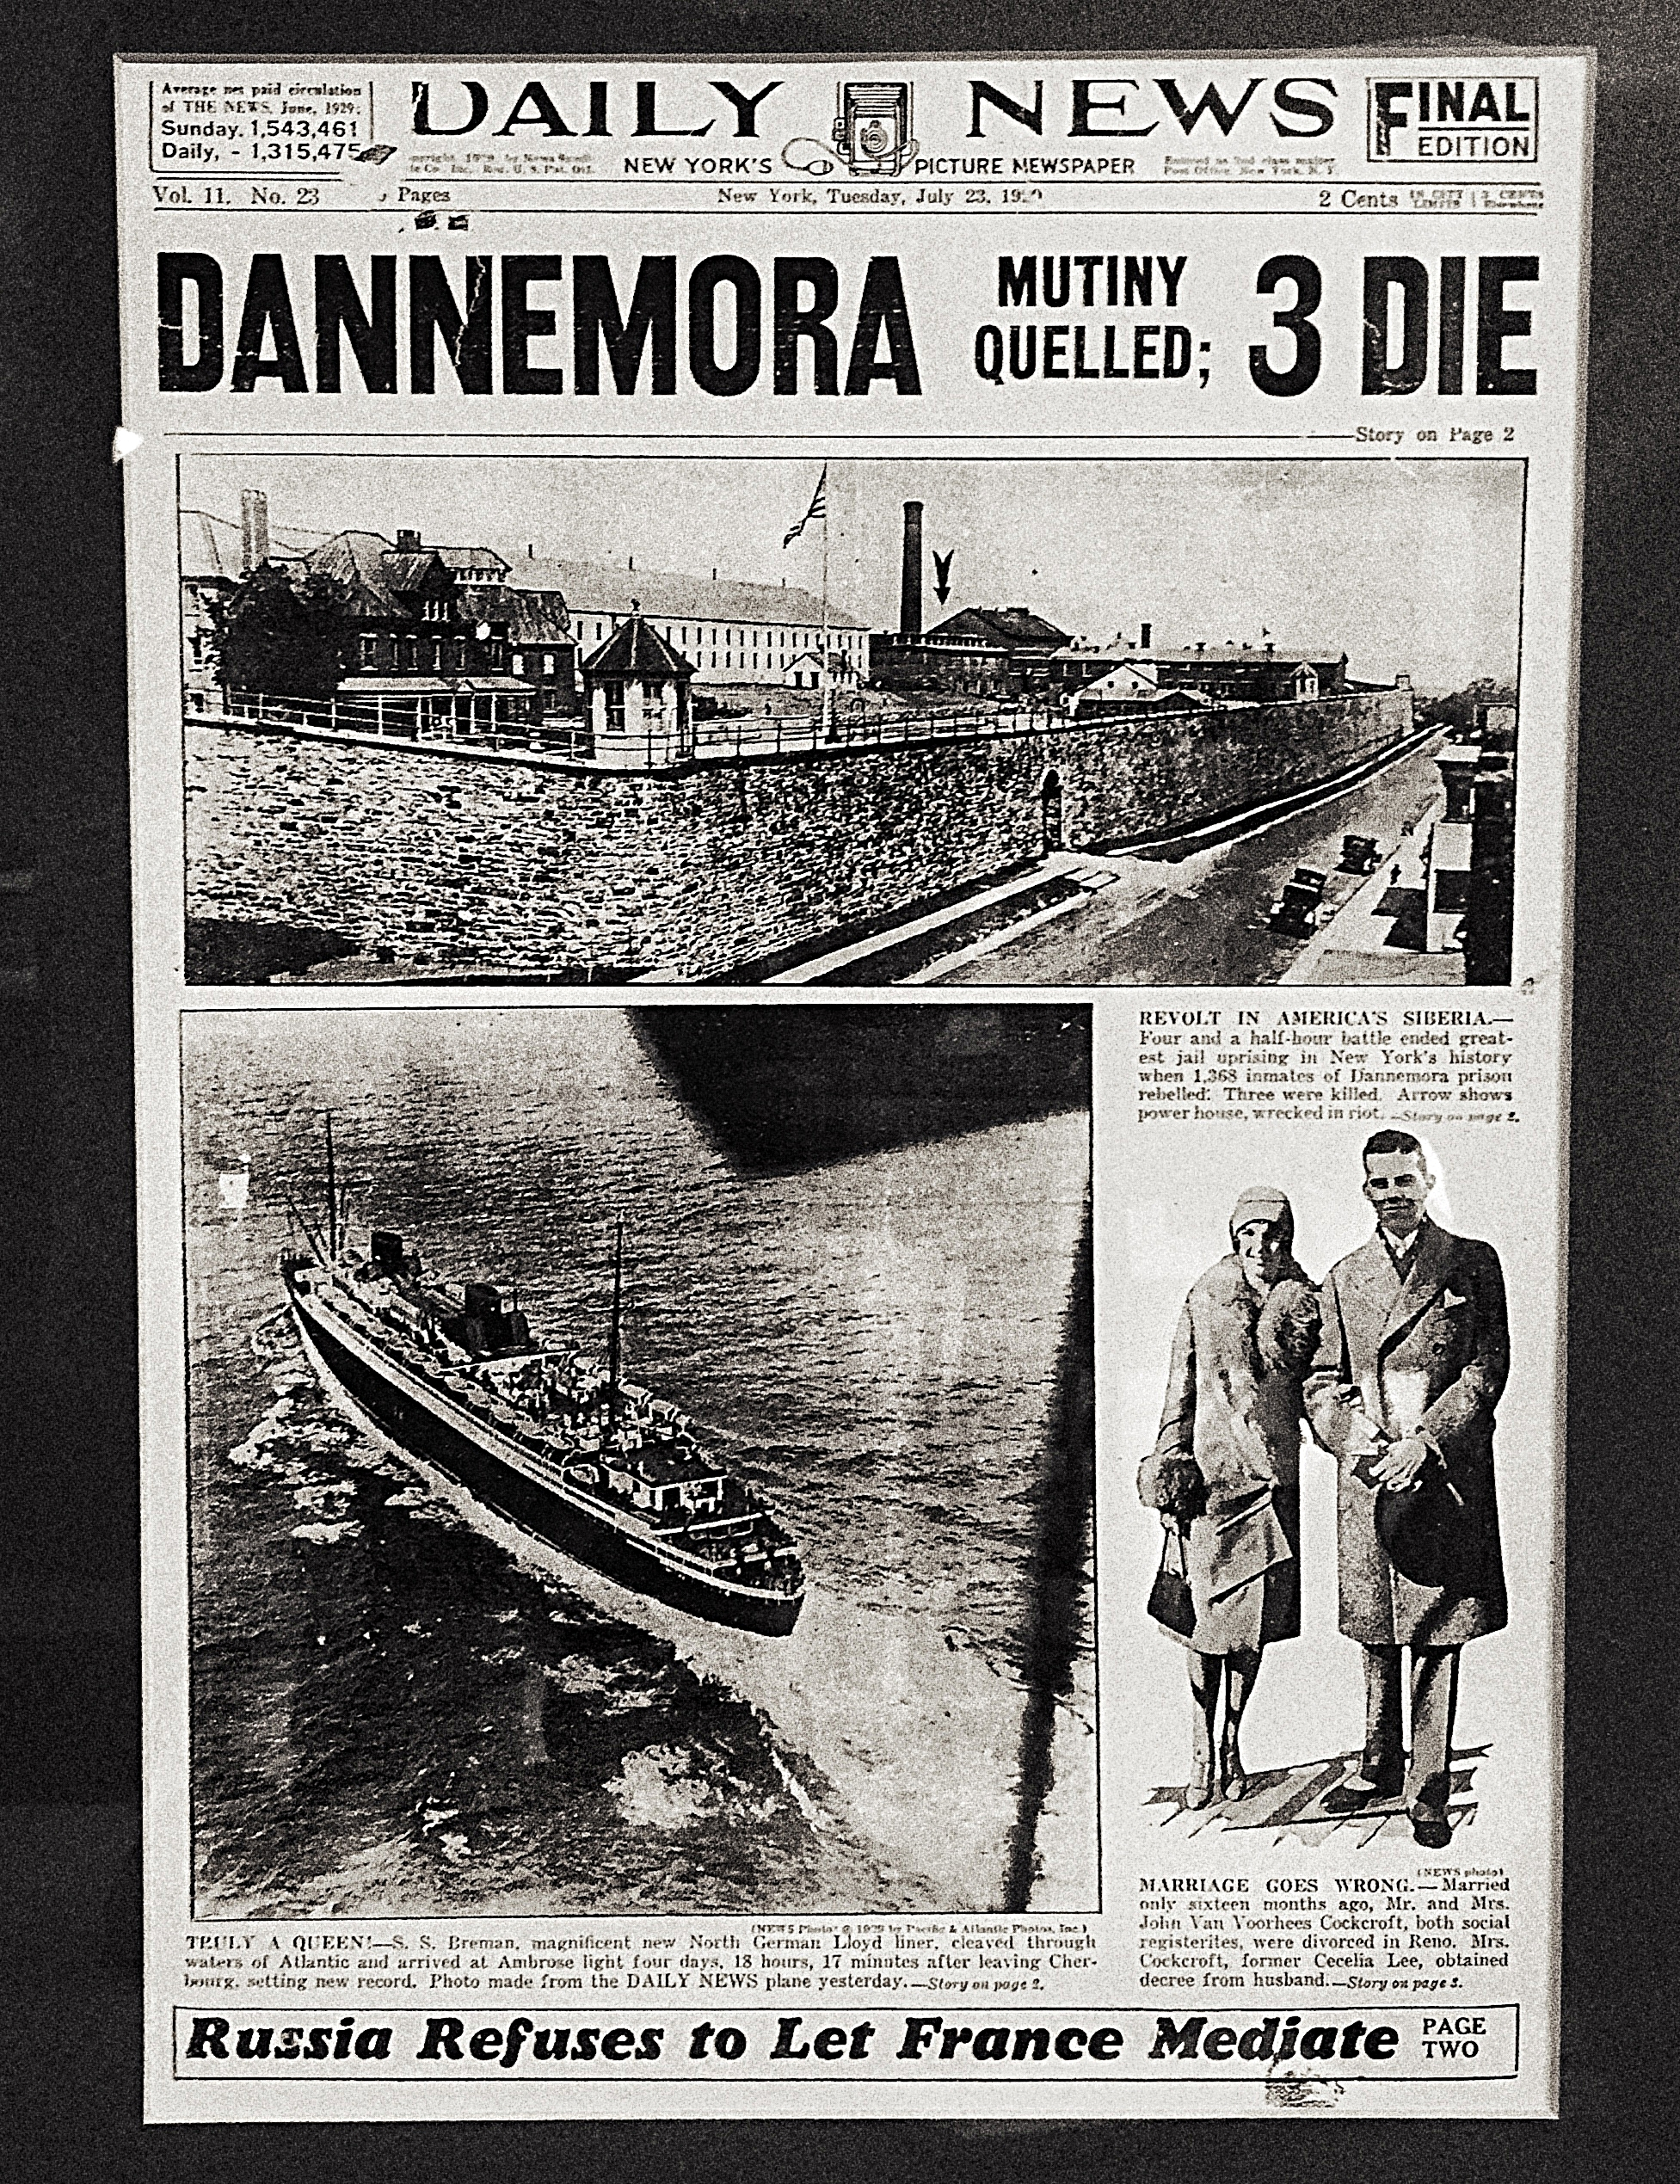 """The front page of the New York Daily News July 23, 1929, that reported of a prisoner mutiny in Dannemora. Image courtesy of historian Walter """"Pete"""" Light for the Museum at the Dannemora Free Library. (Chelsia Rose Marcius/June 17, 2015)"""